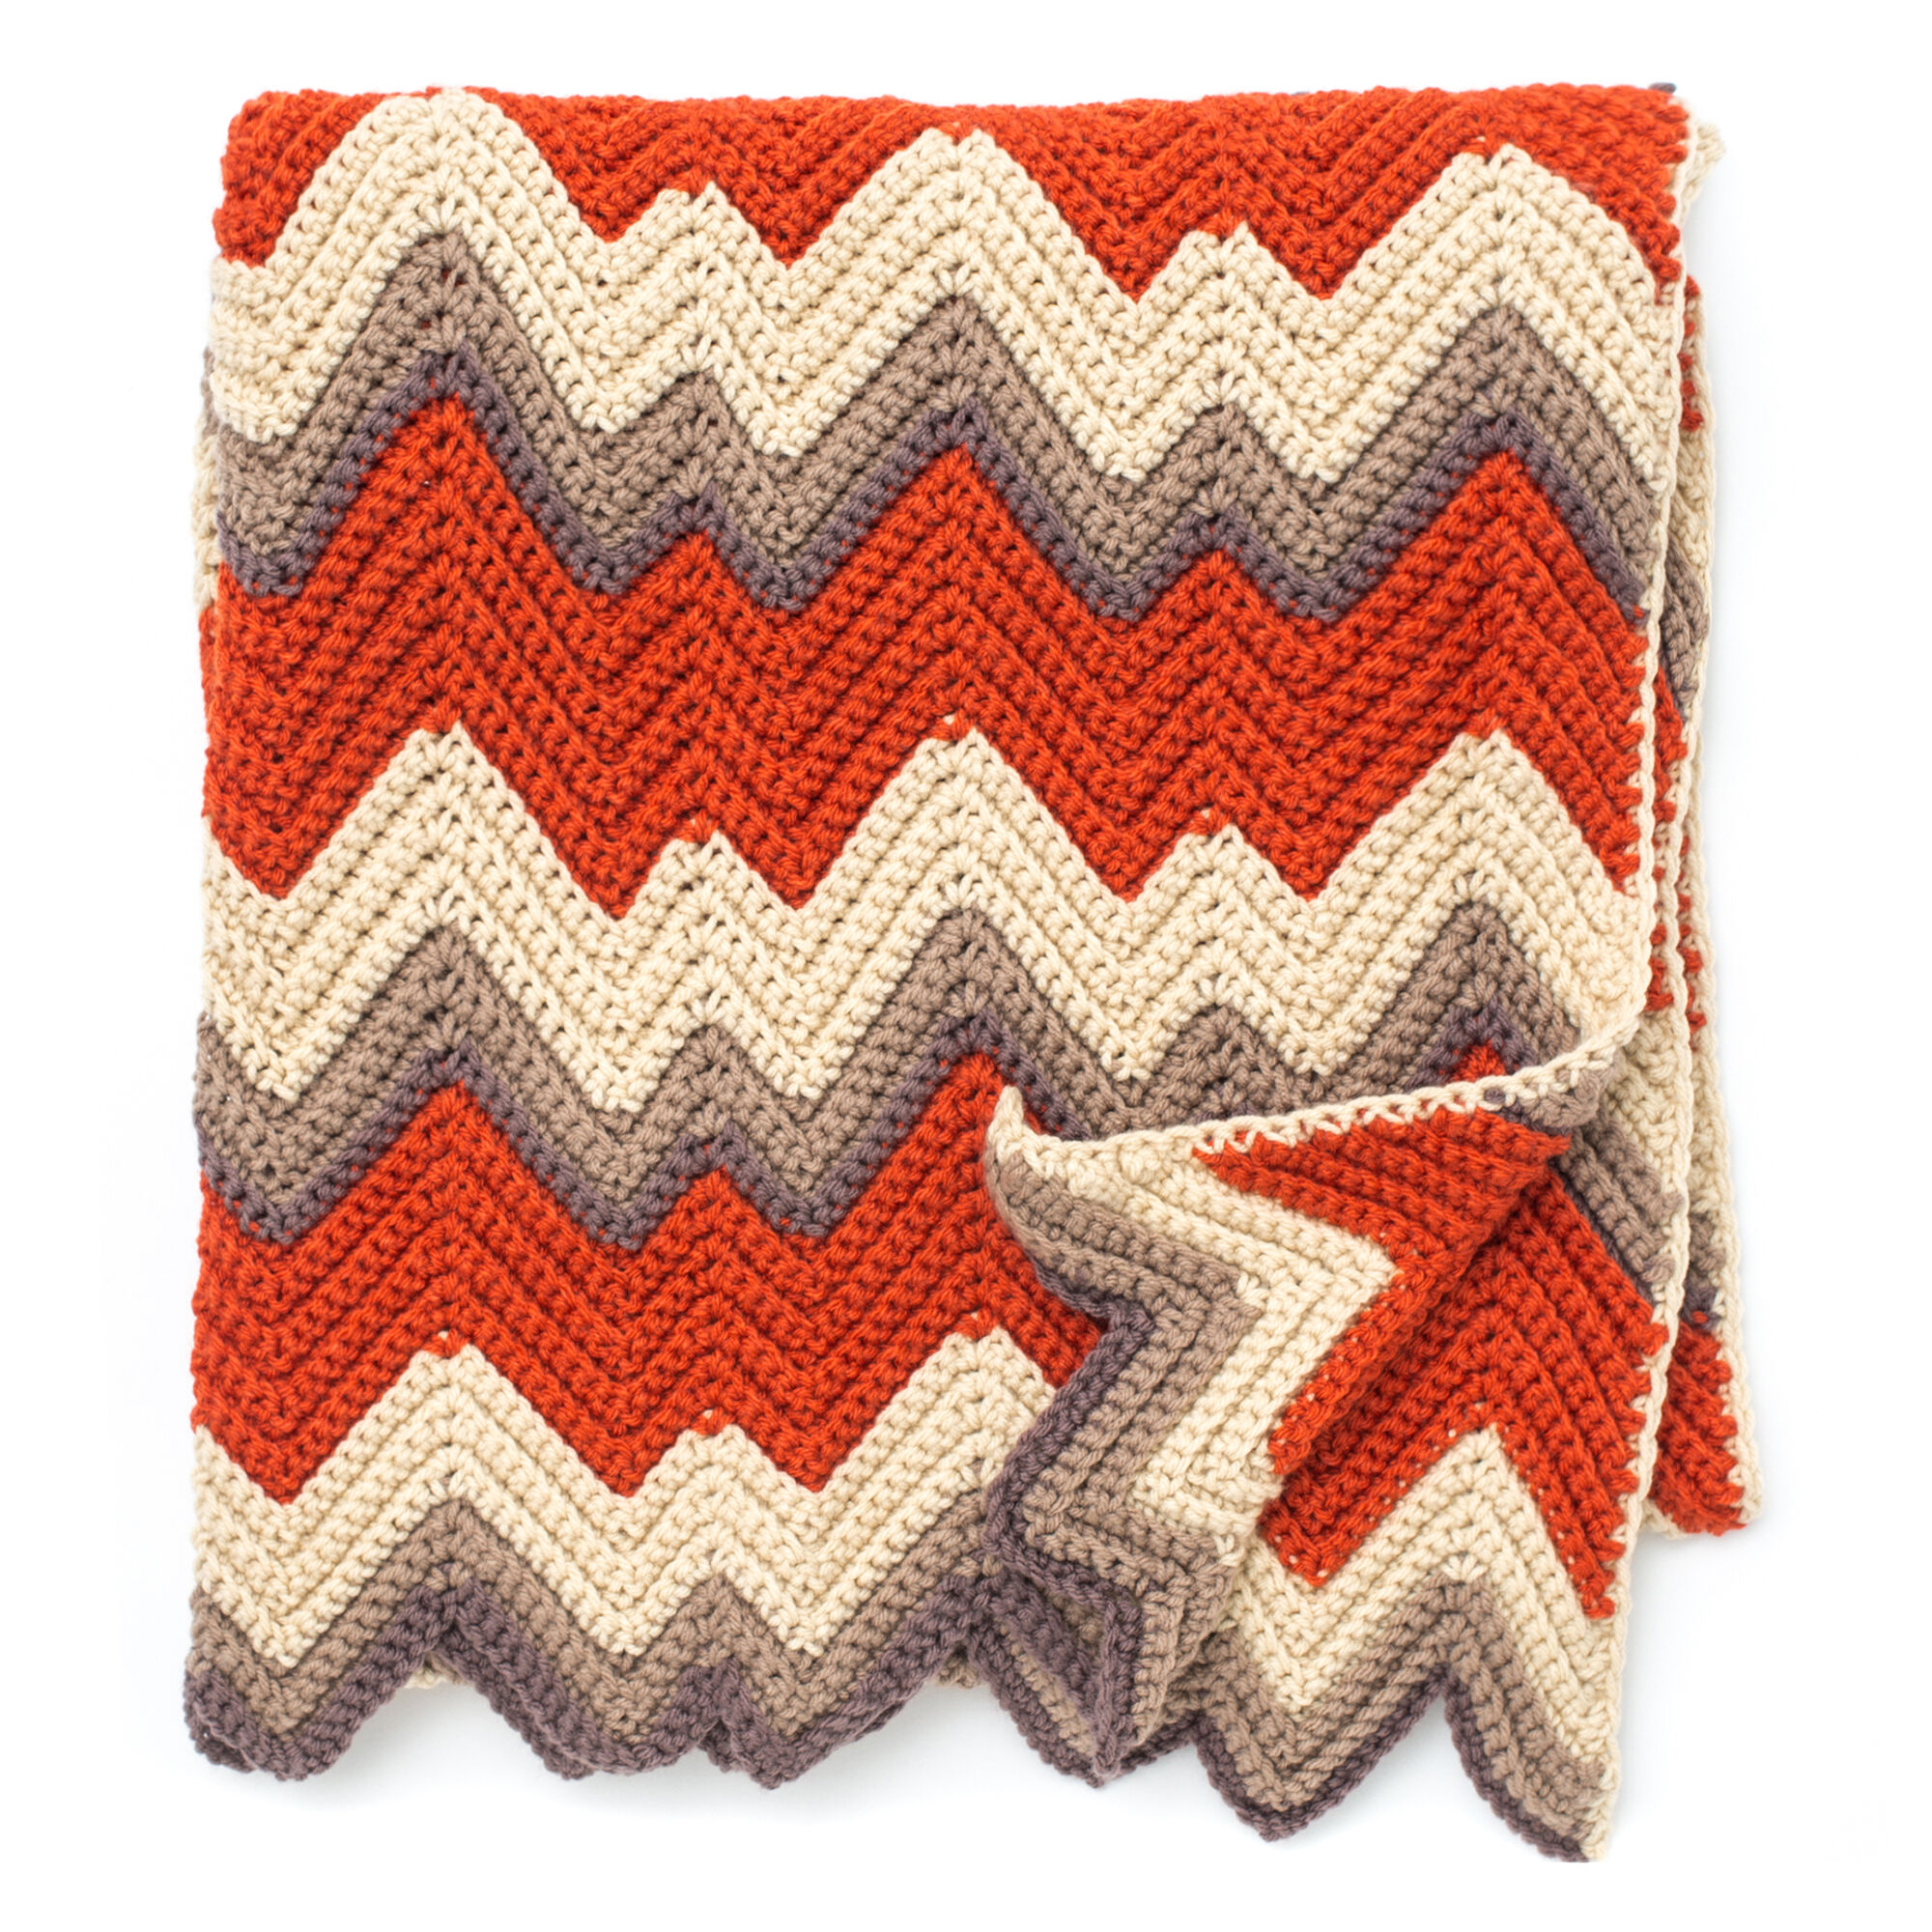 Zigzag Crochet Pattern Simple Design